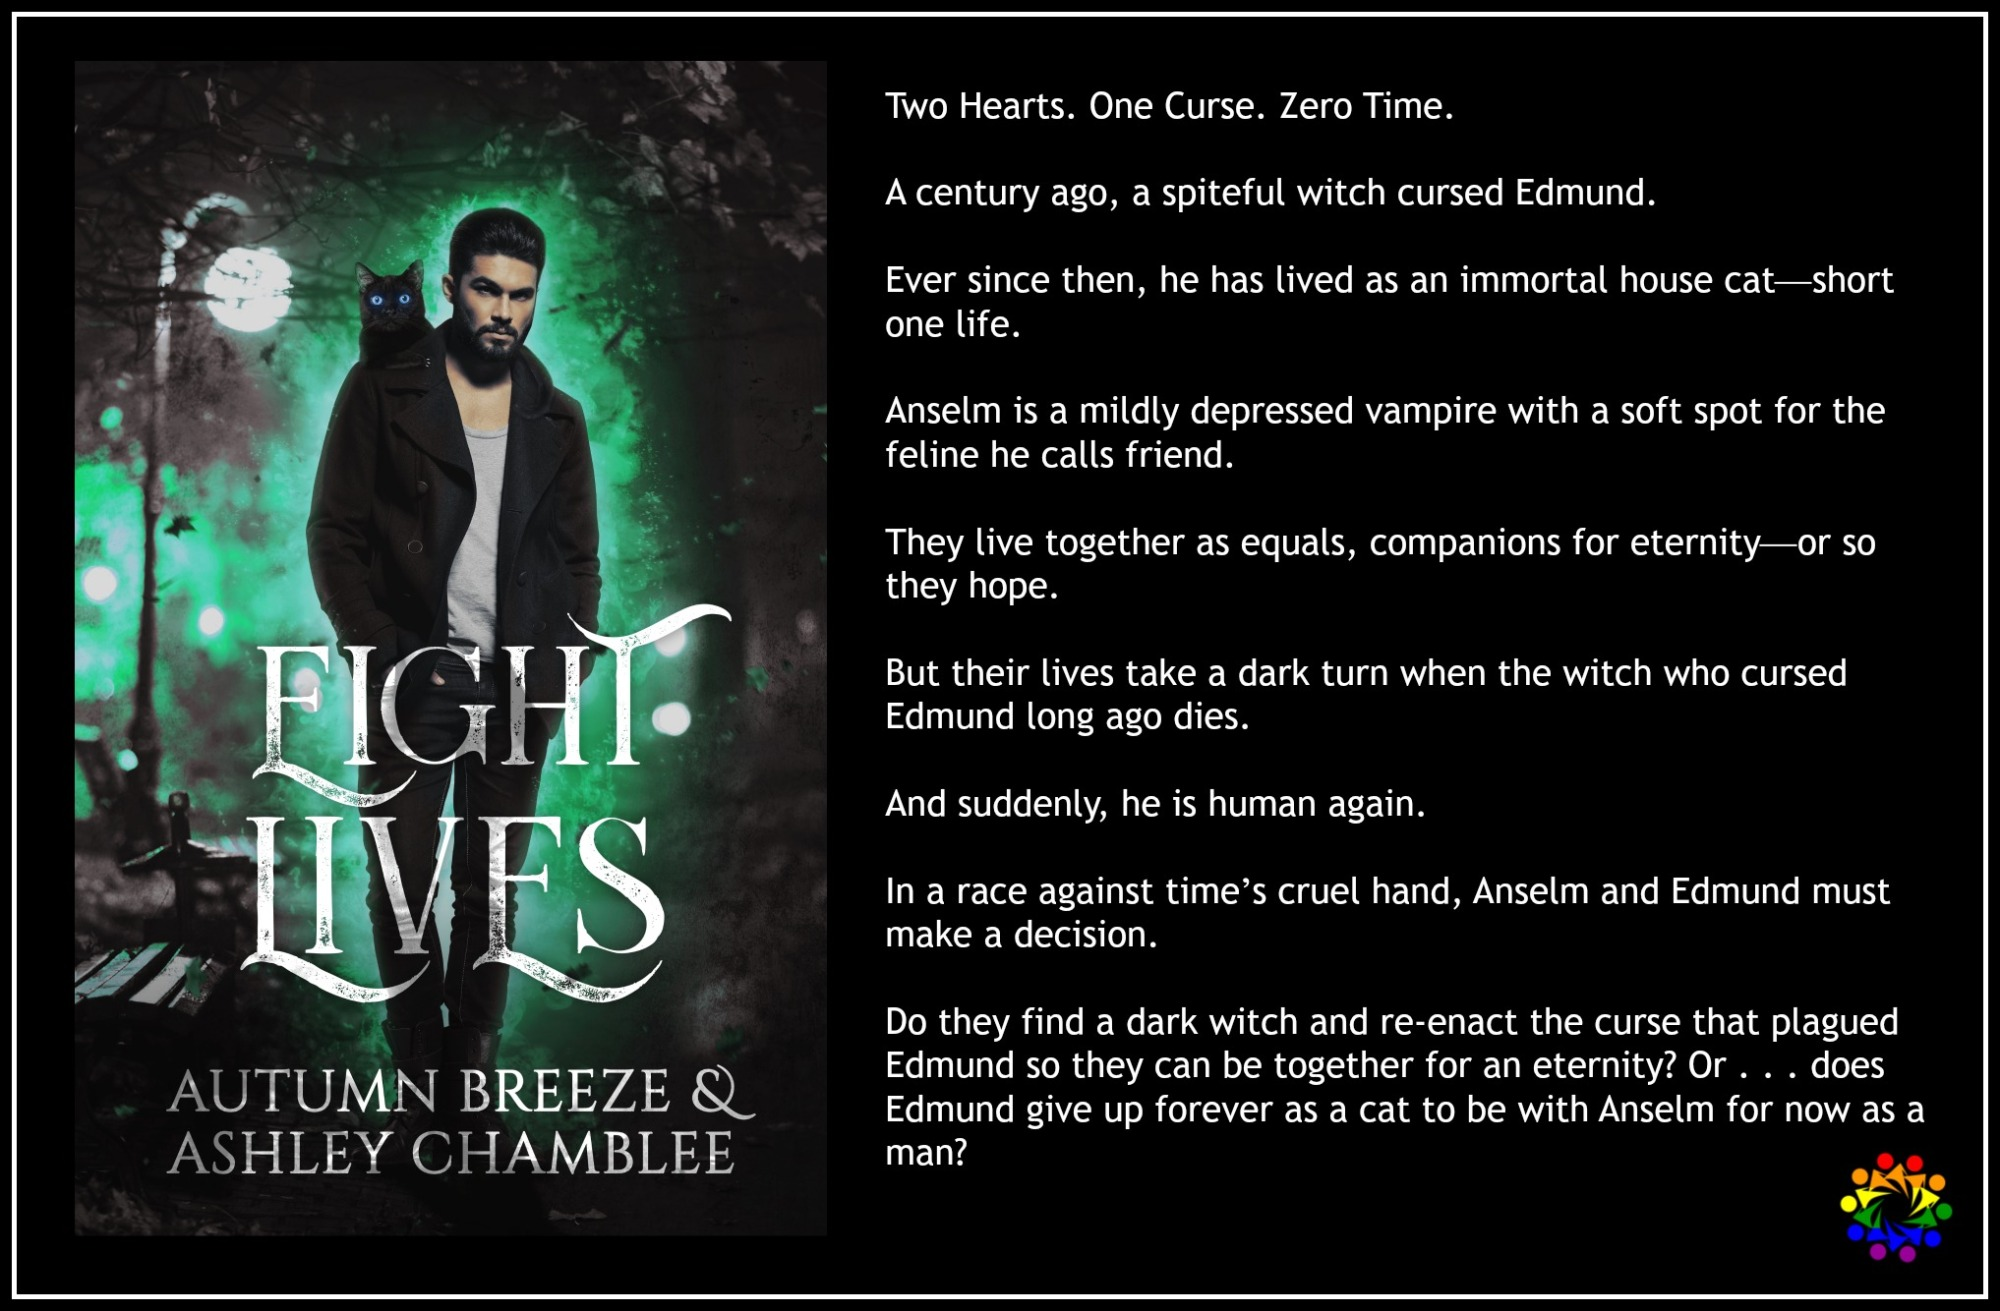 Eight Lives Autumn Breeze Ashley Chamblee MM Romance Urban Fantasy